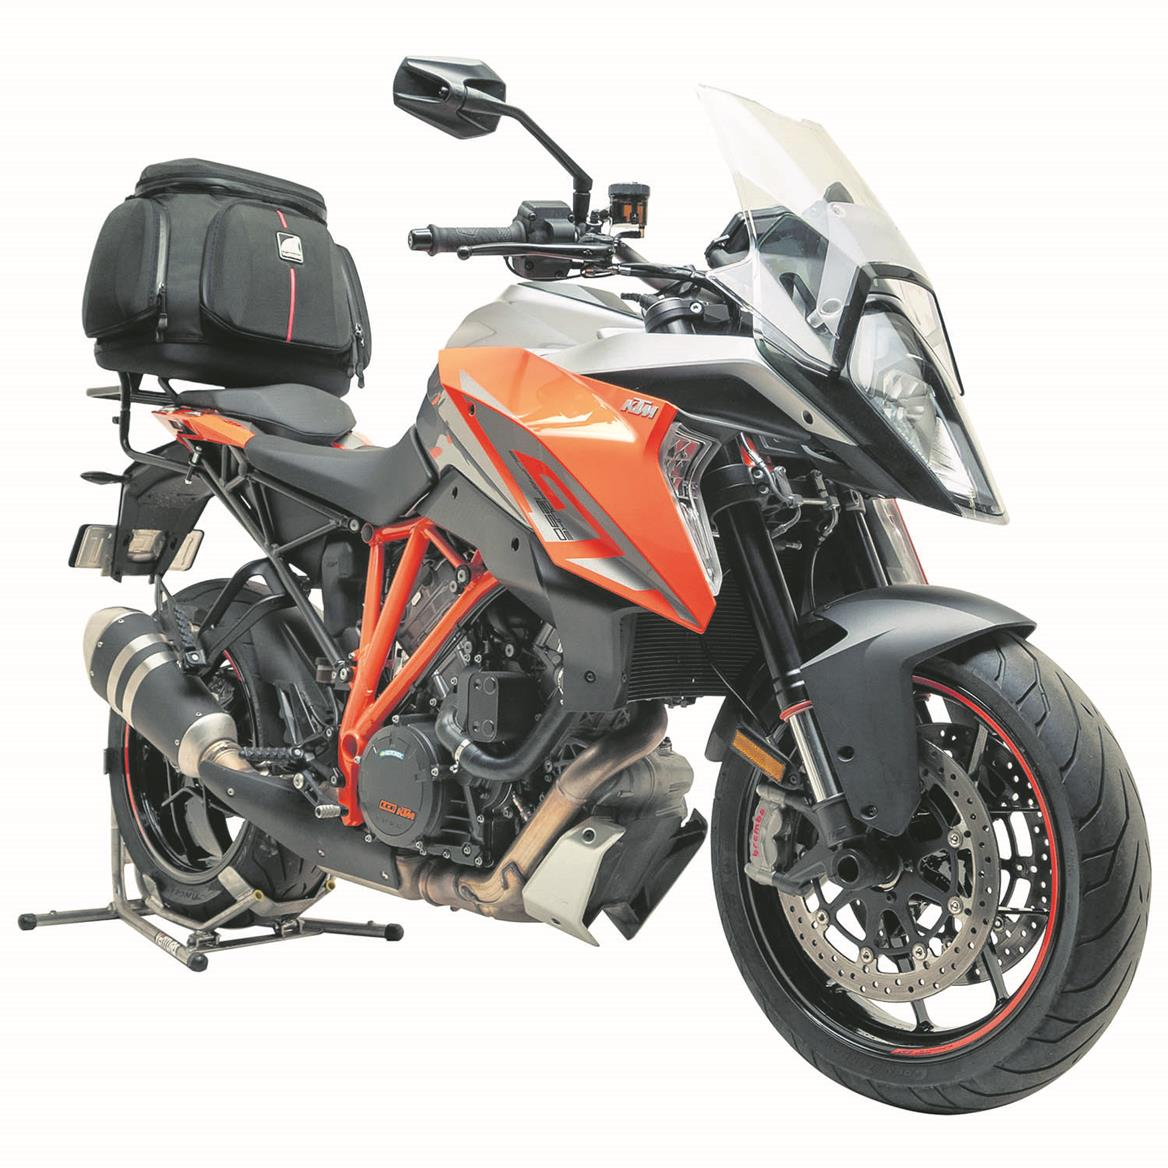 ventura luggage for ktm 1290 super duke gt rrp 340. Black Bedroom Furniture Sets. Home Design Ideas